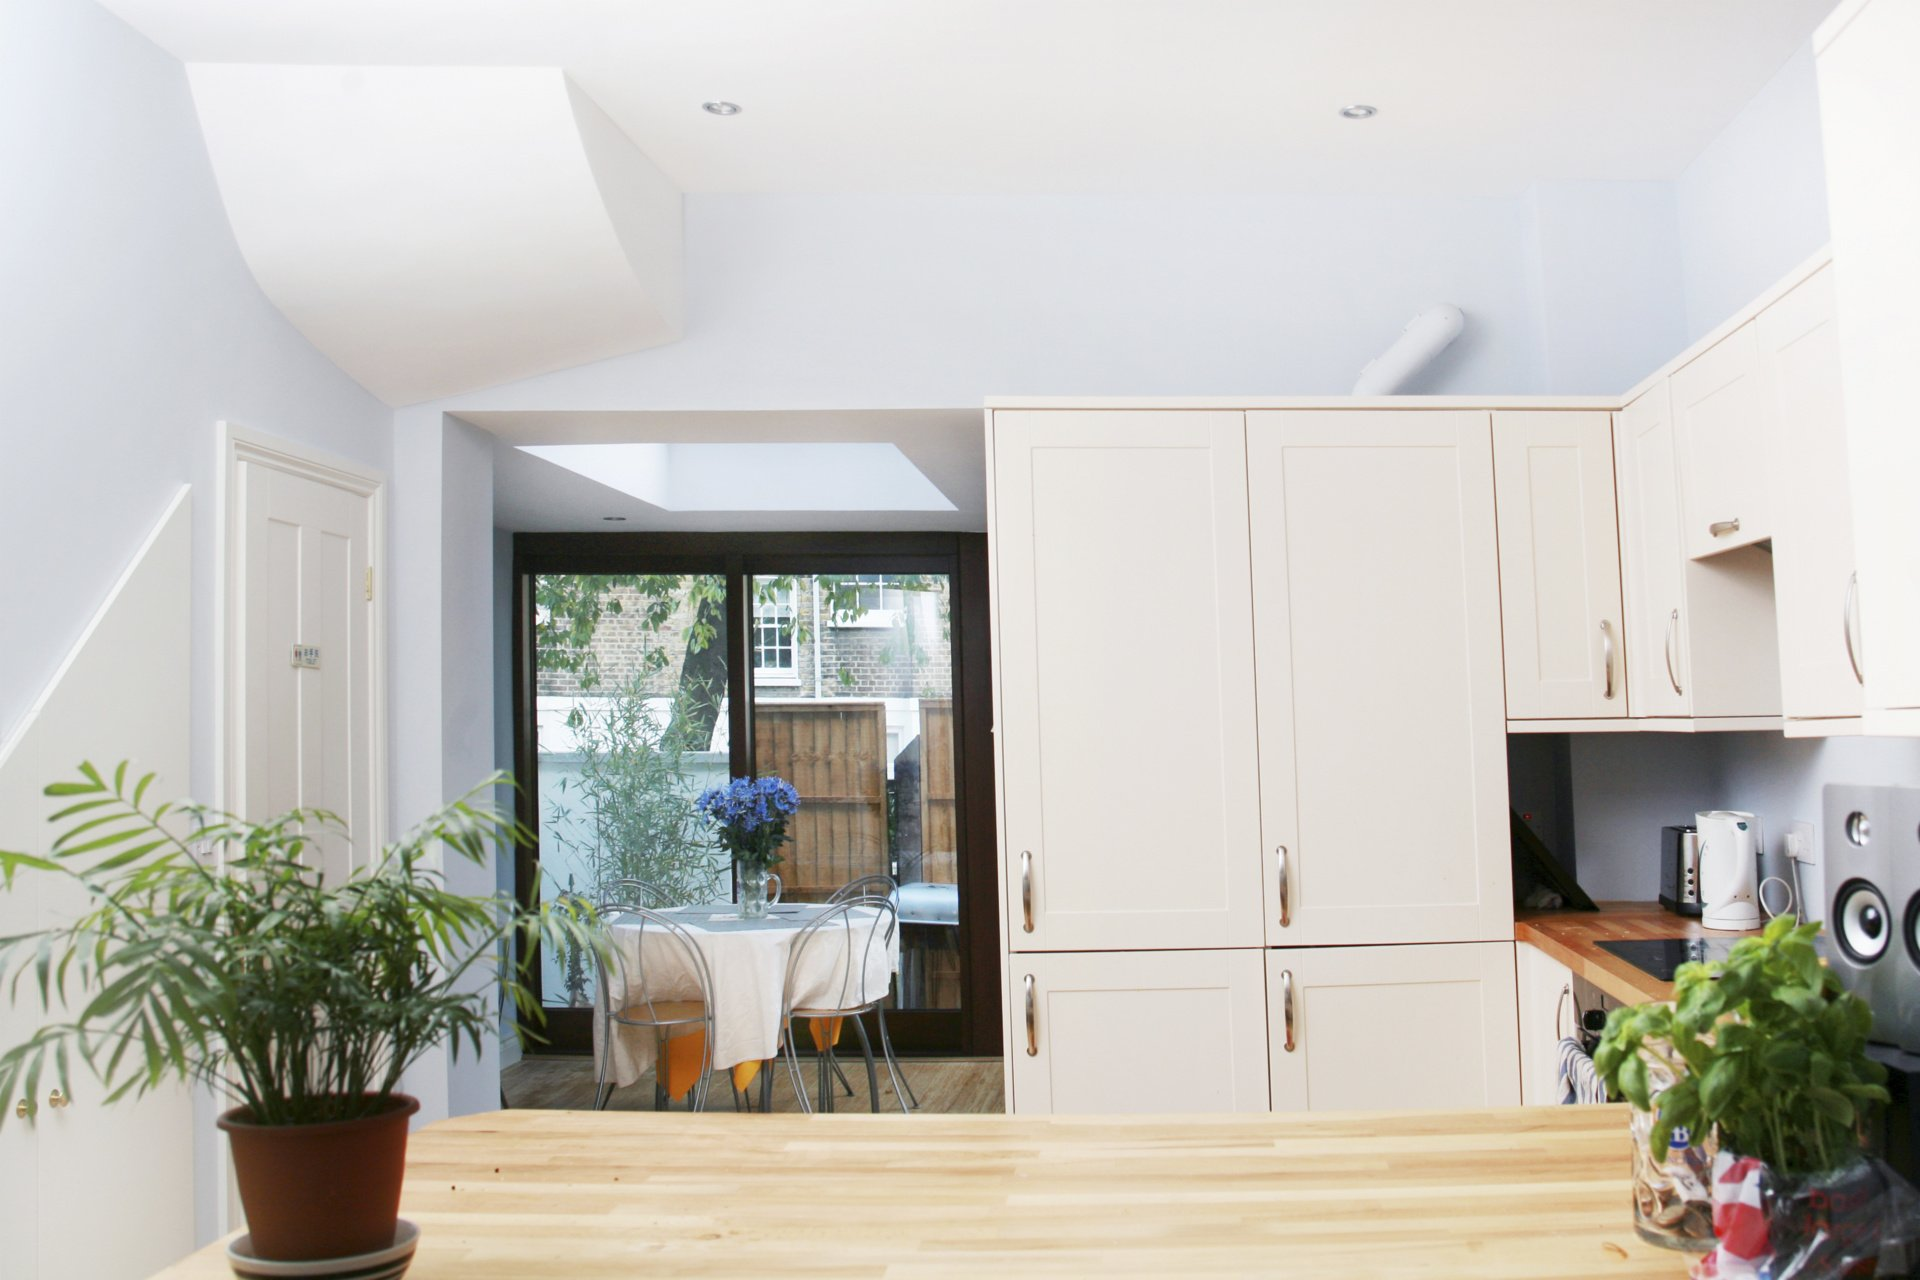 Kings Cross Camden NW1 House extension Kitchen view King's Cross, Camden NW1 | House extension